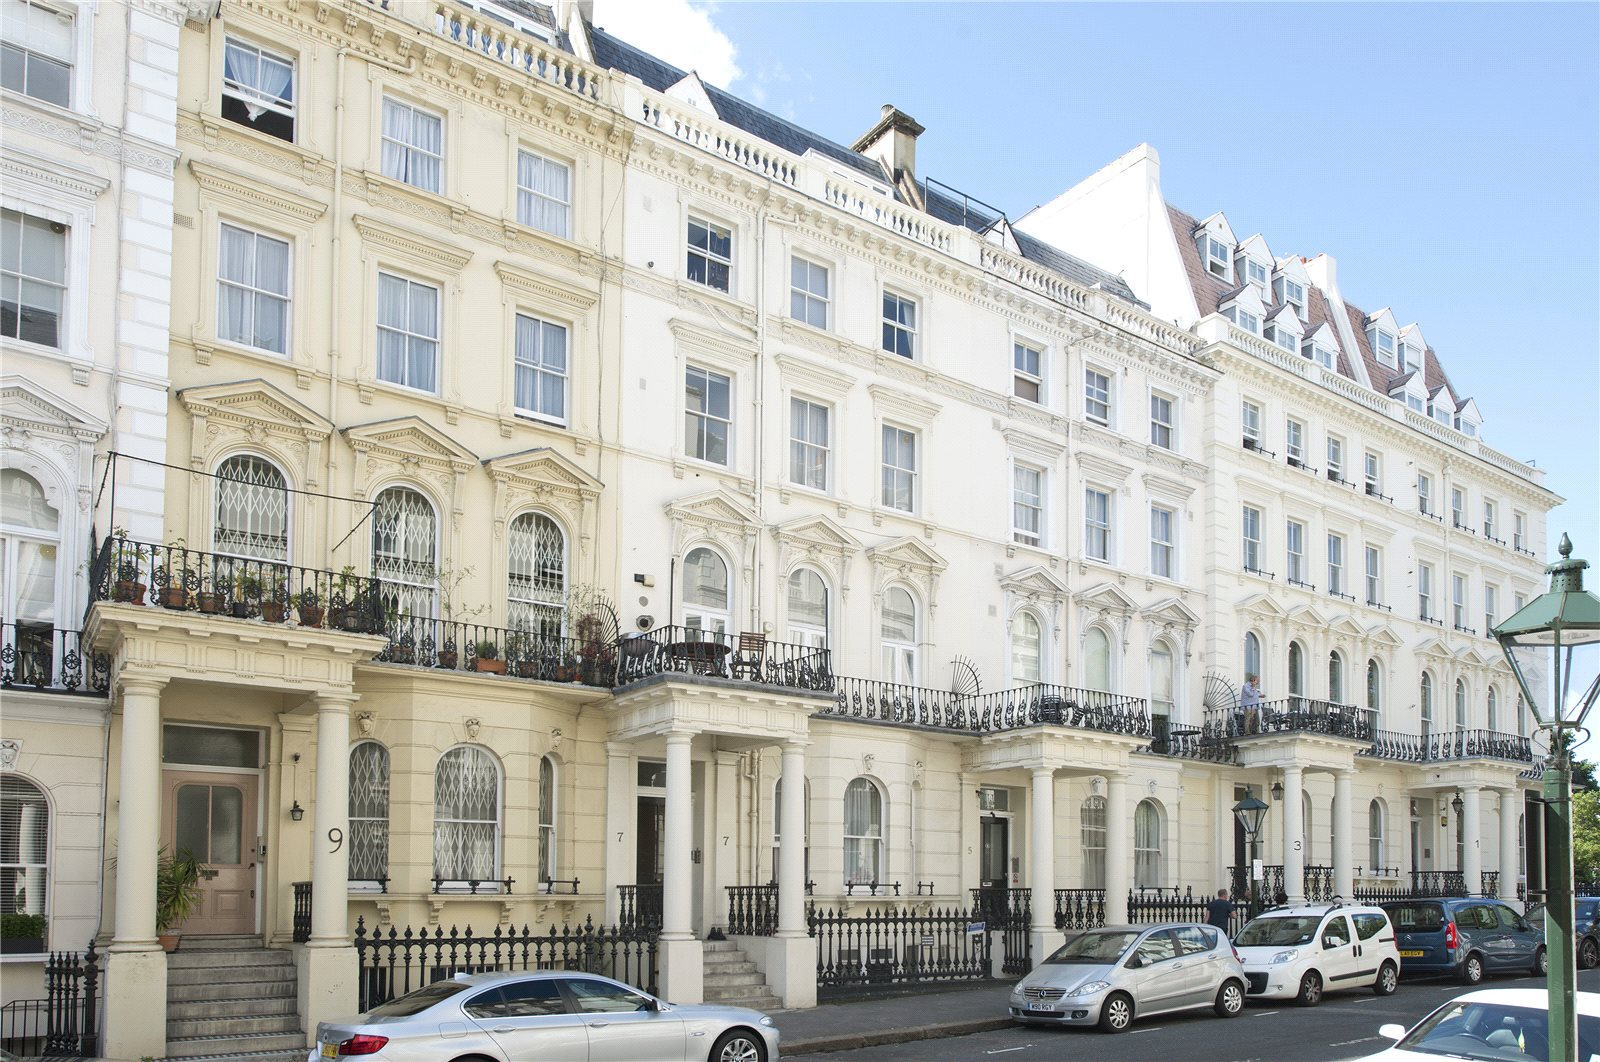 Additional photo for property listing at Prince of Wales Terrace, Kensington, London, W8 Kensington, London, England